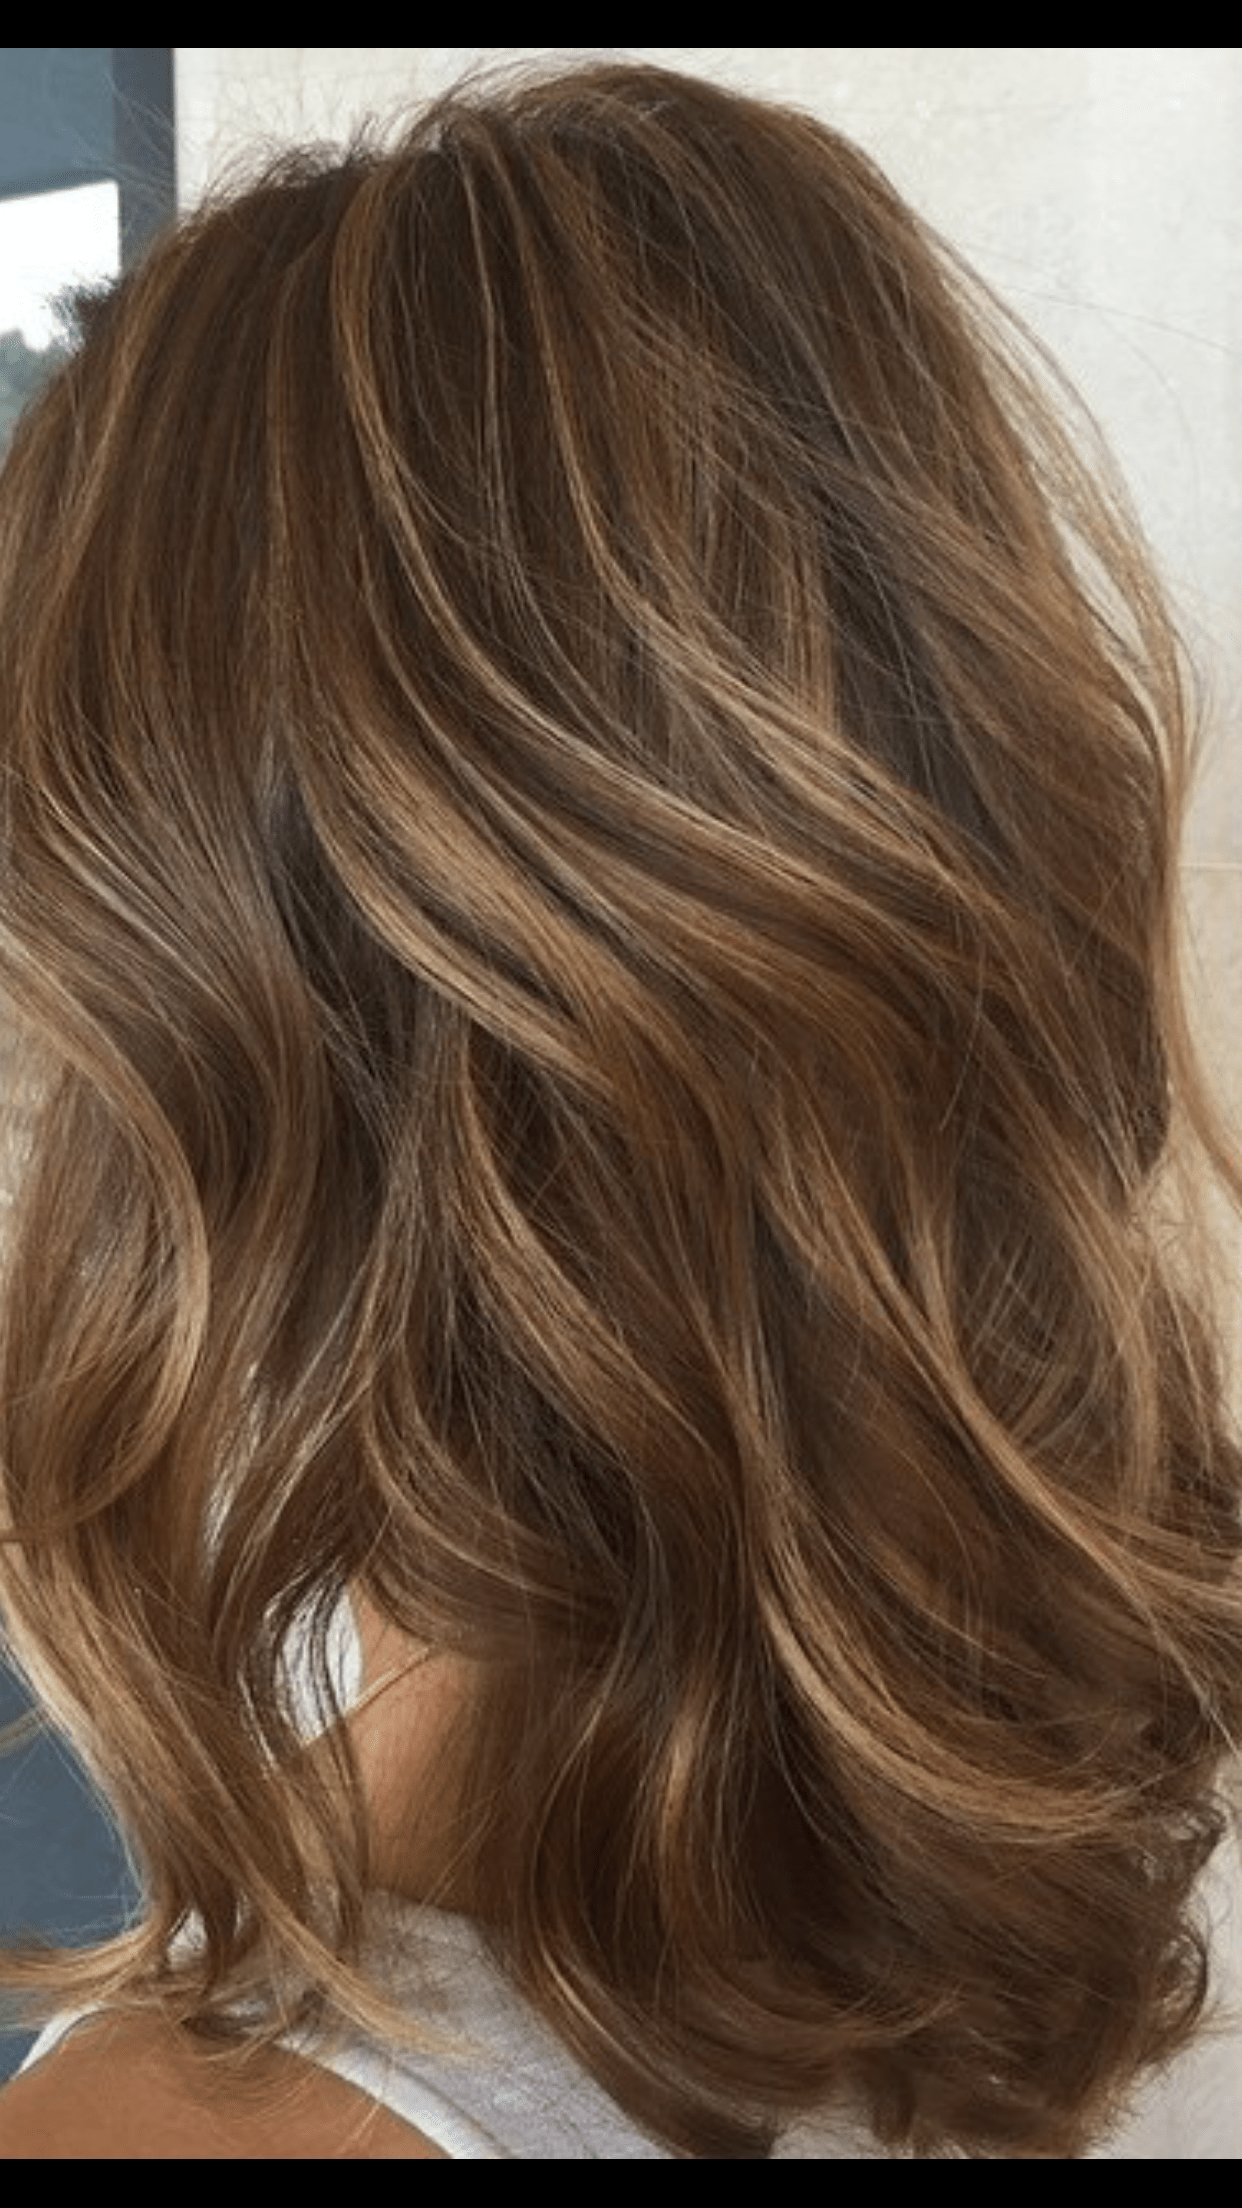 The Best Light Brown With Highlights Hairstyles In 2019 Hair Pictures